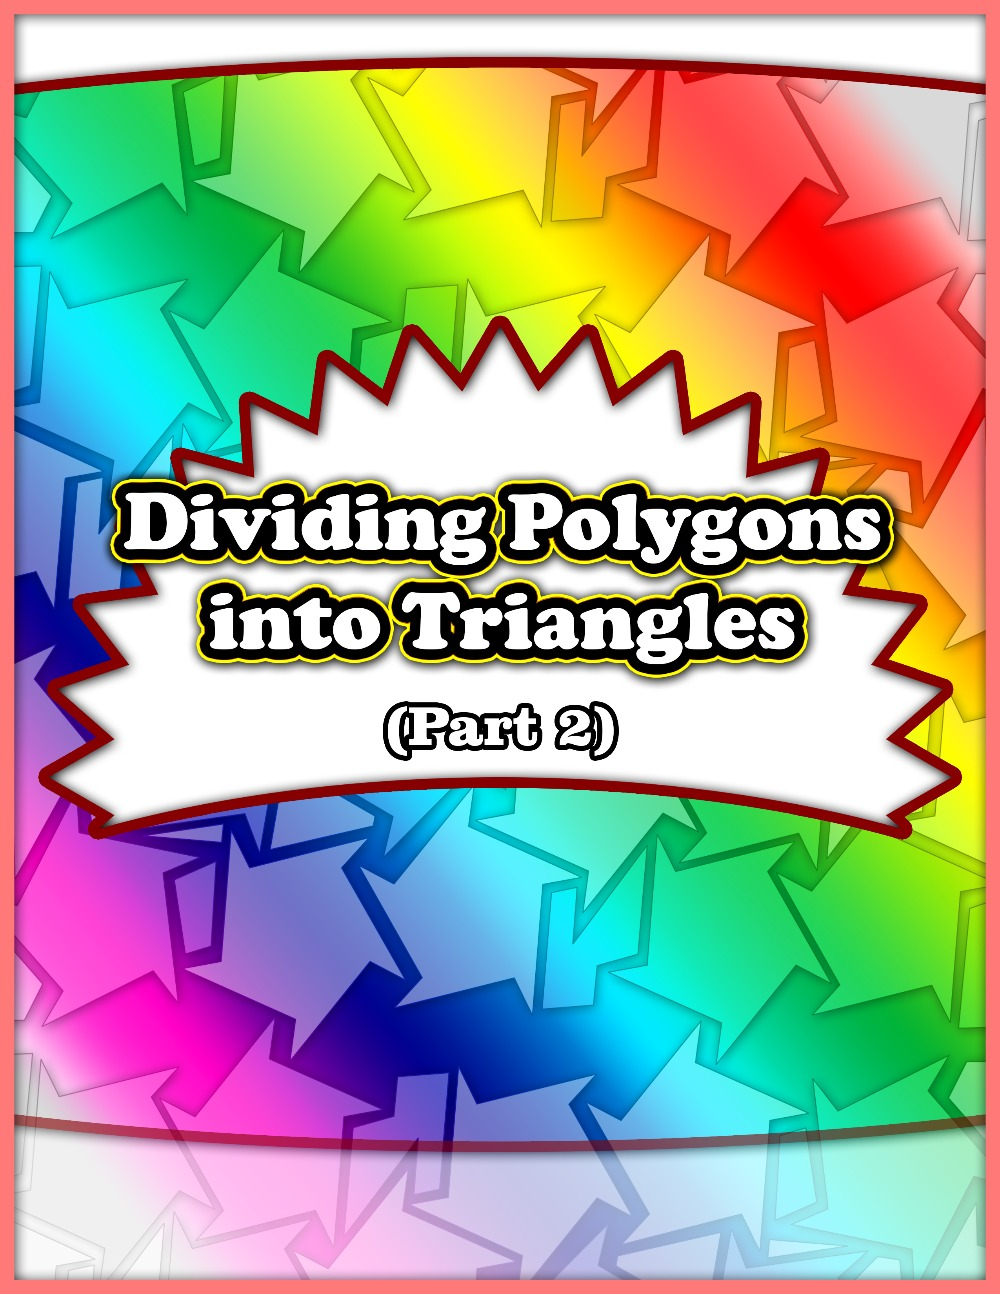 Dividing Polygons into Triangles (Part II)